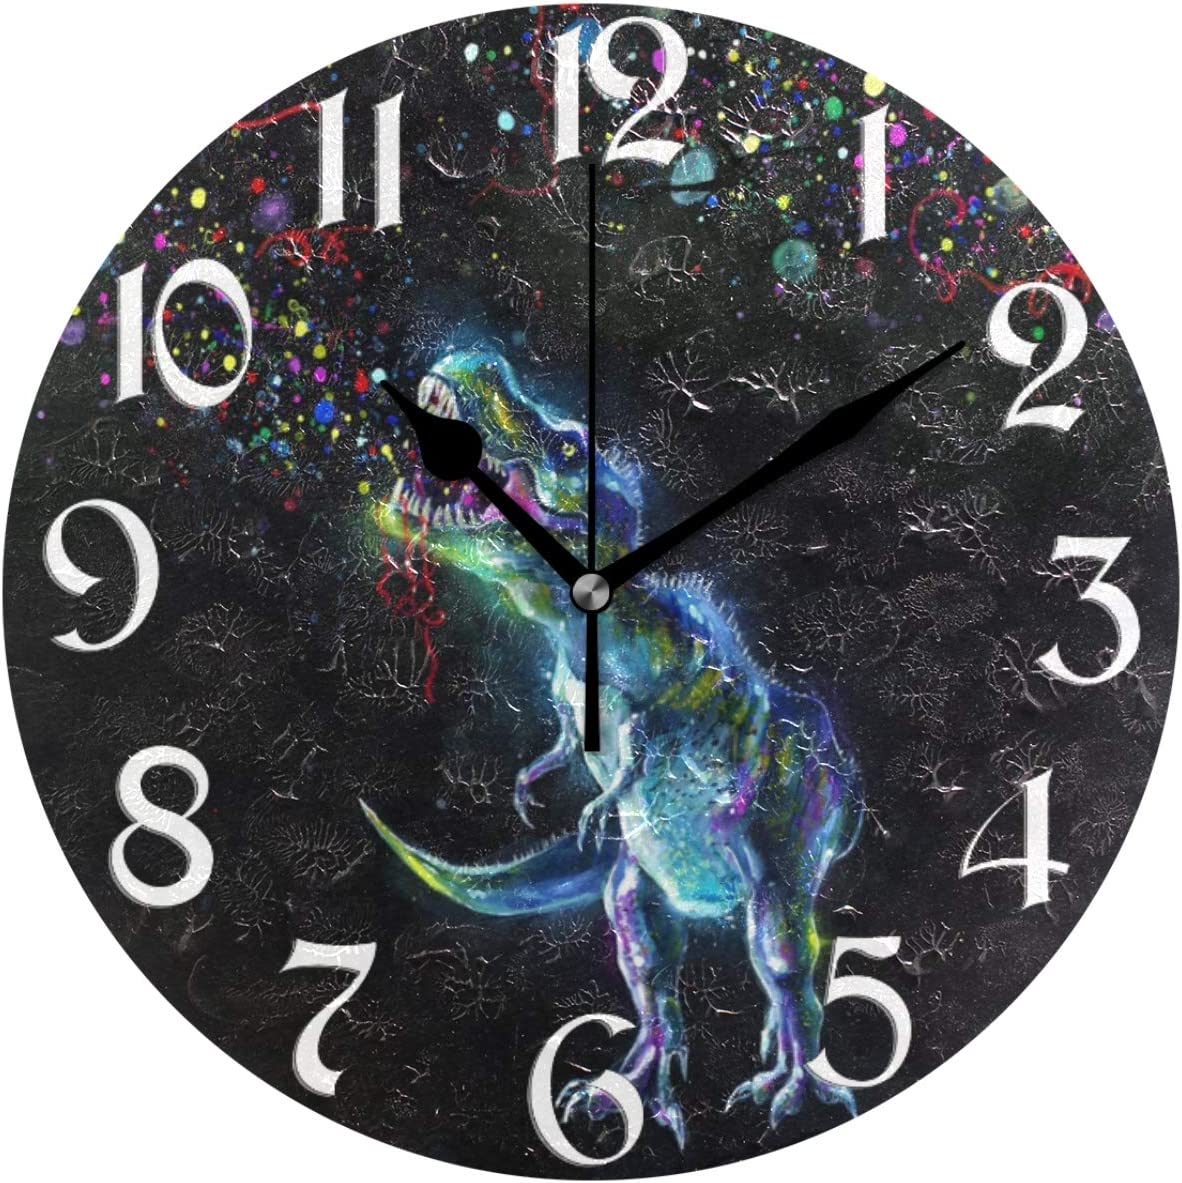 Naanle Fireworks Dinosaur Round Wall Clock Watercolor Dinosaur Silent Non Ticking Wall Clocks Battery Operated for Home Office School Decor